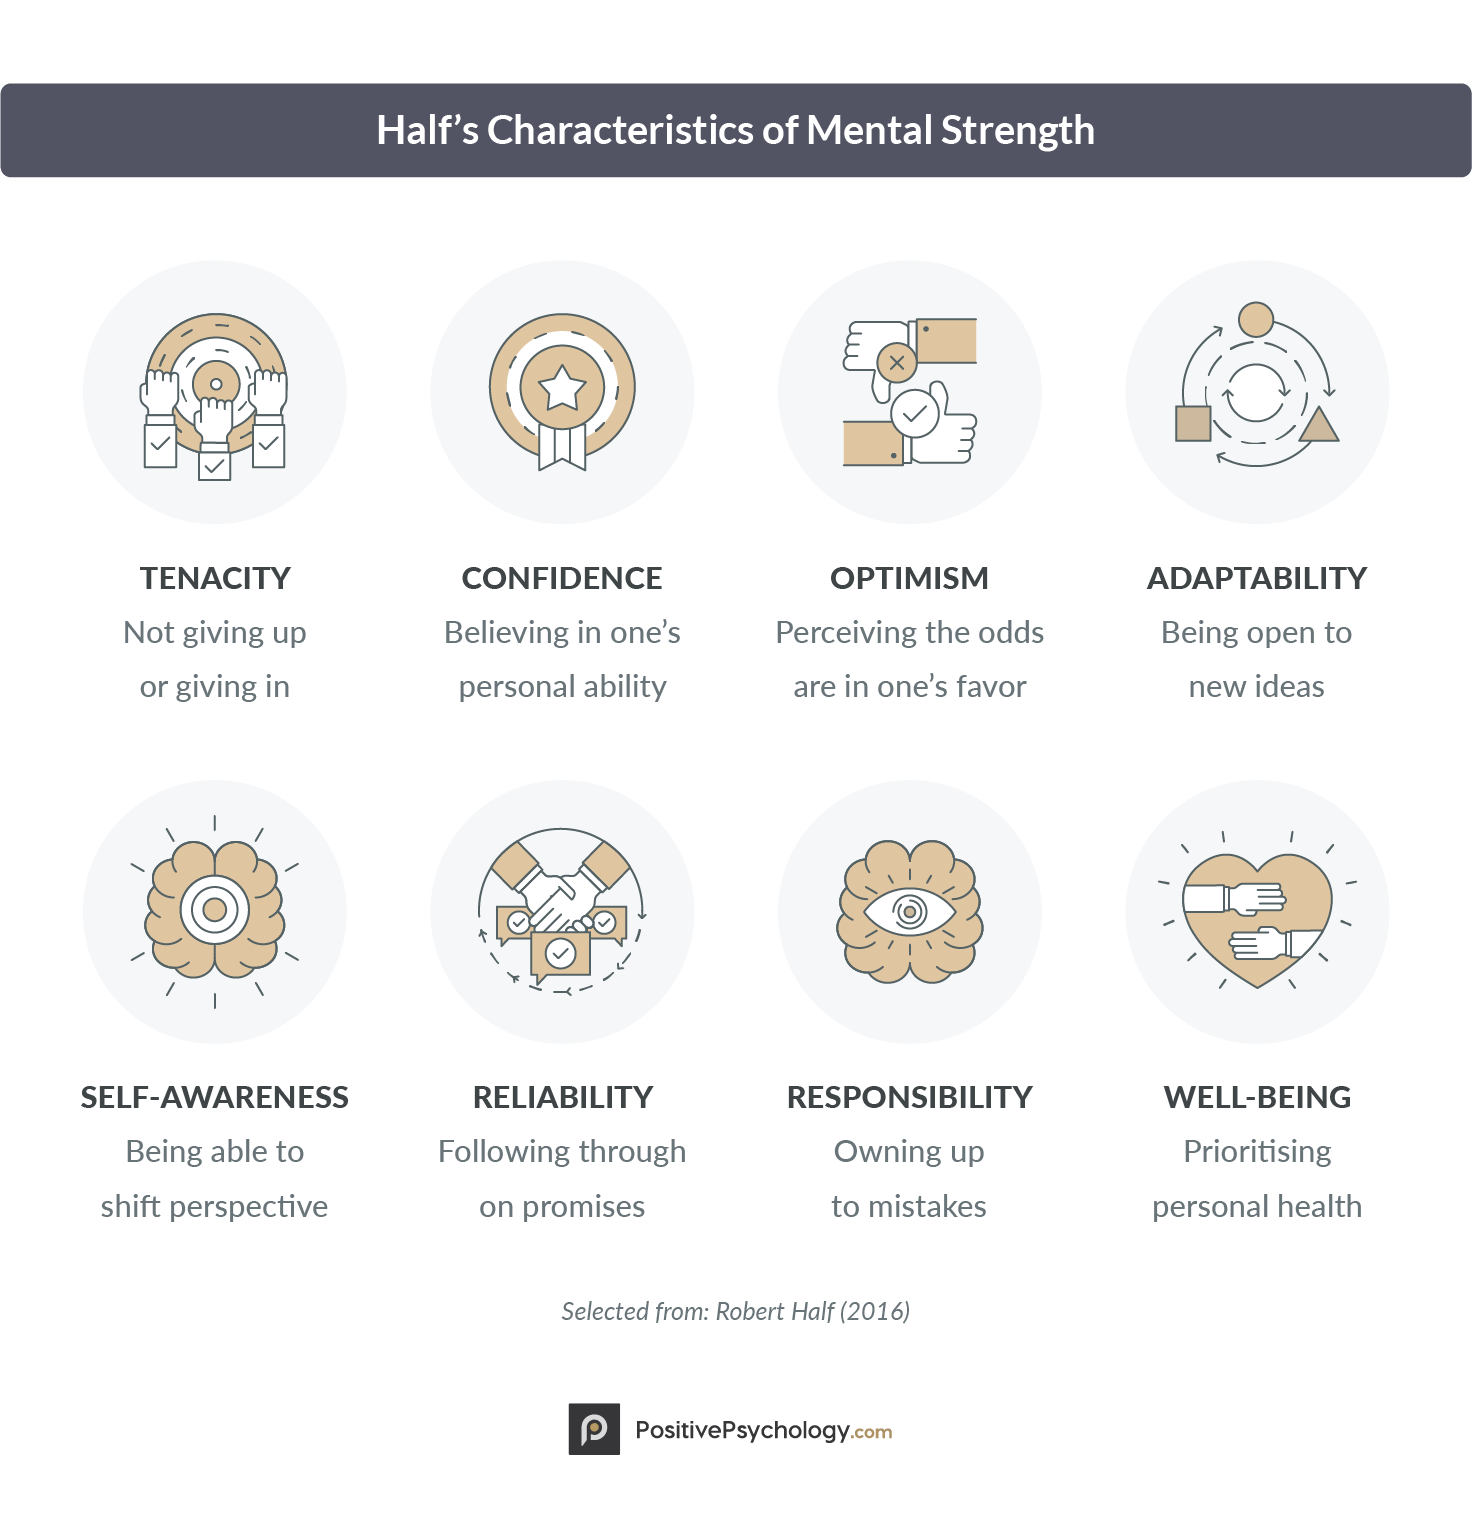 Half's Characteristics of Mental Strength